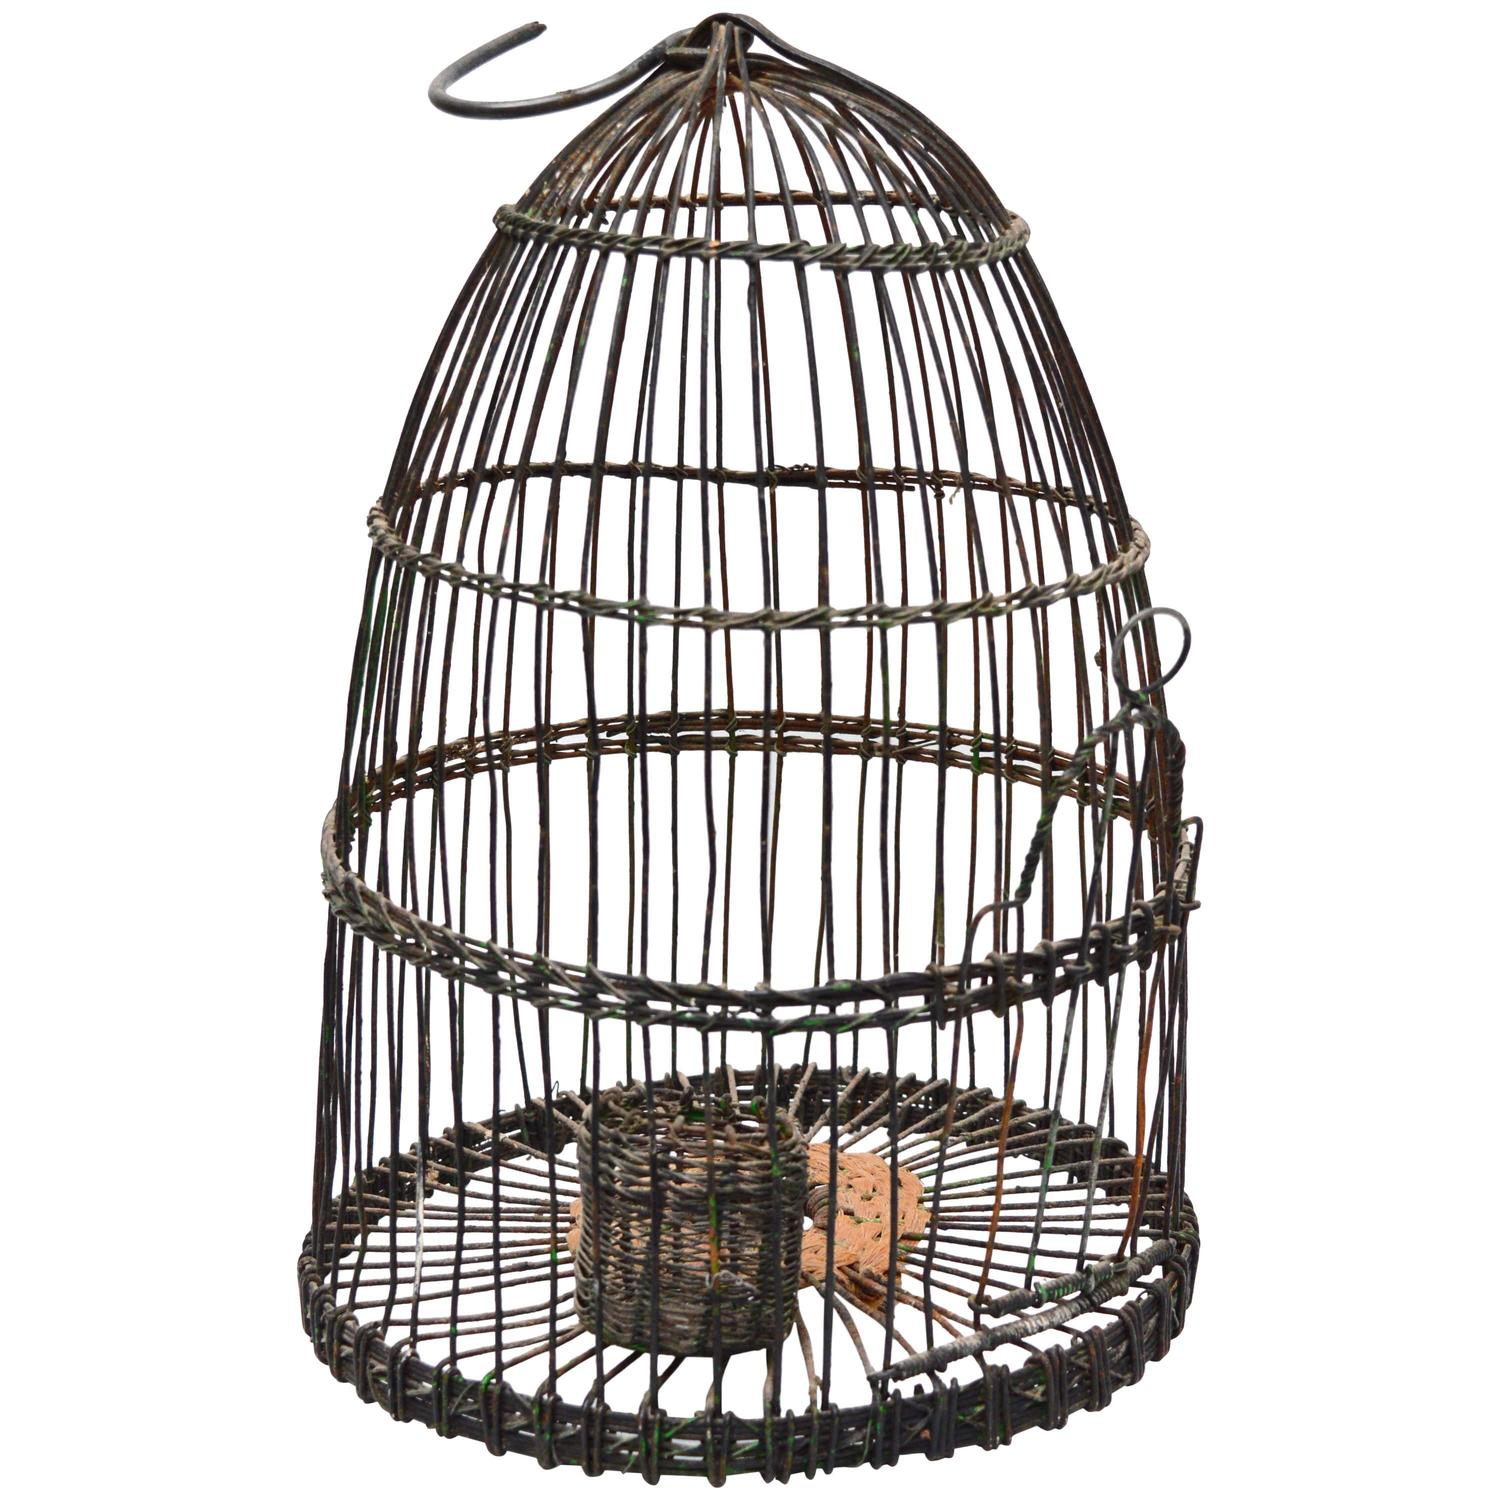 Old fashioned bird cages for sale 20